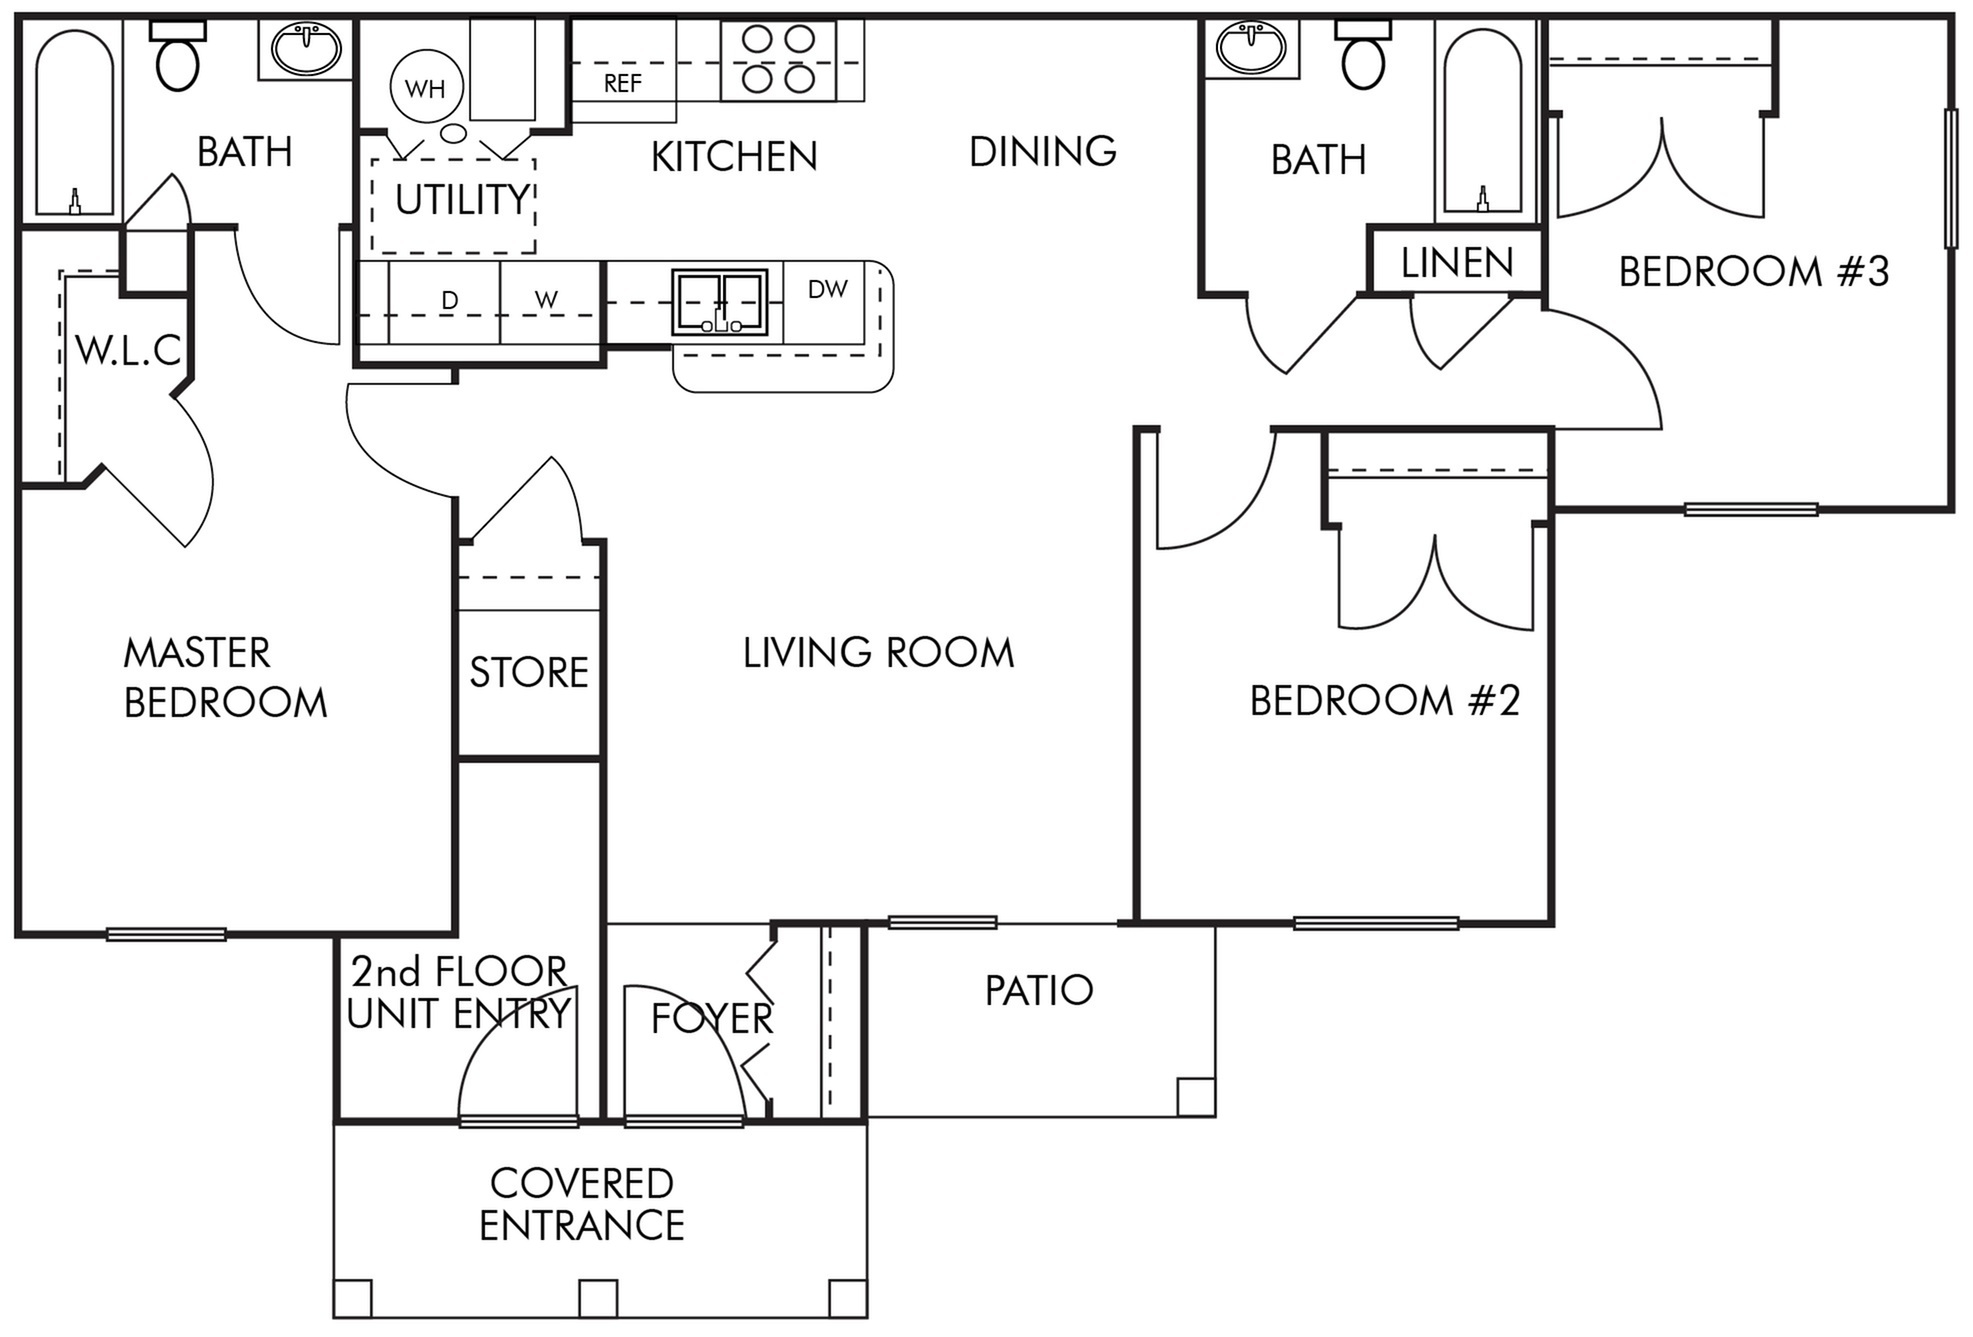 3 Bed 2 Bath- 1st Floor